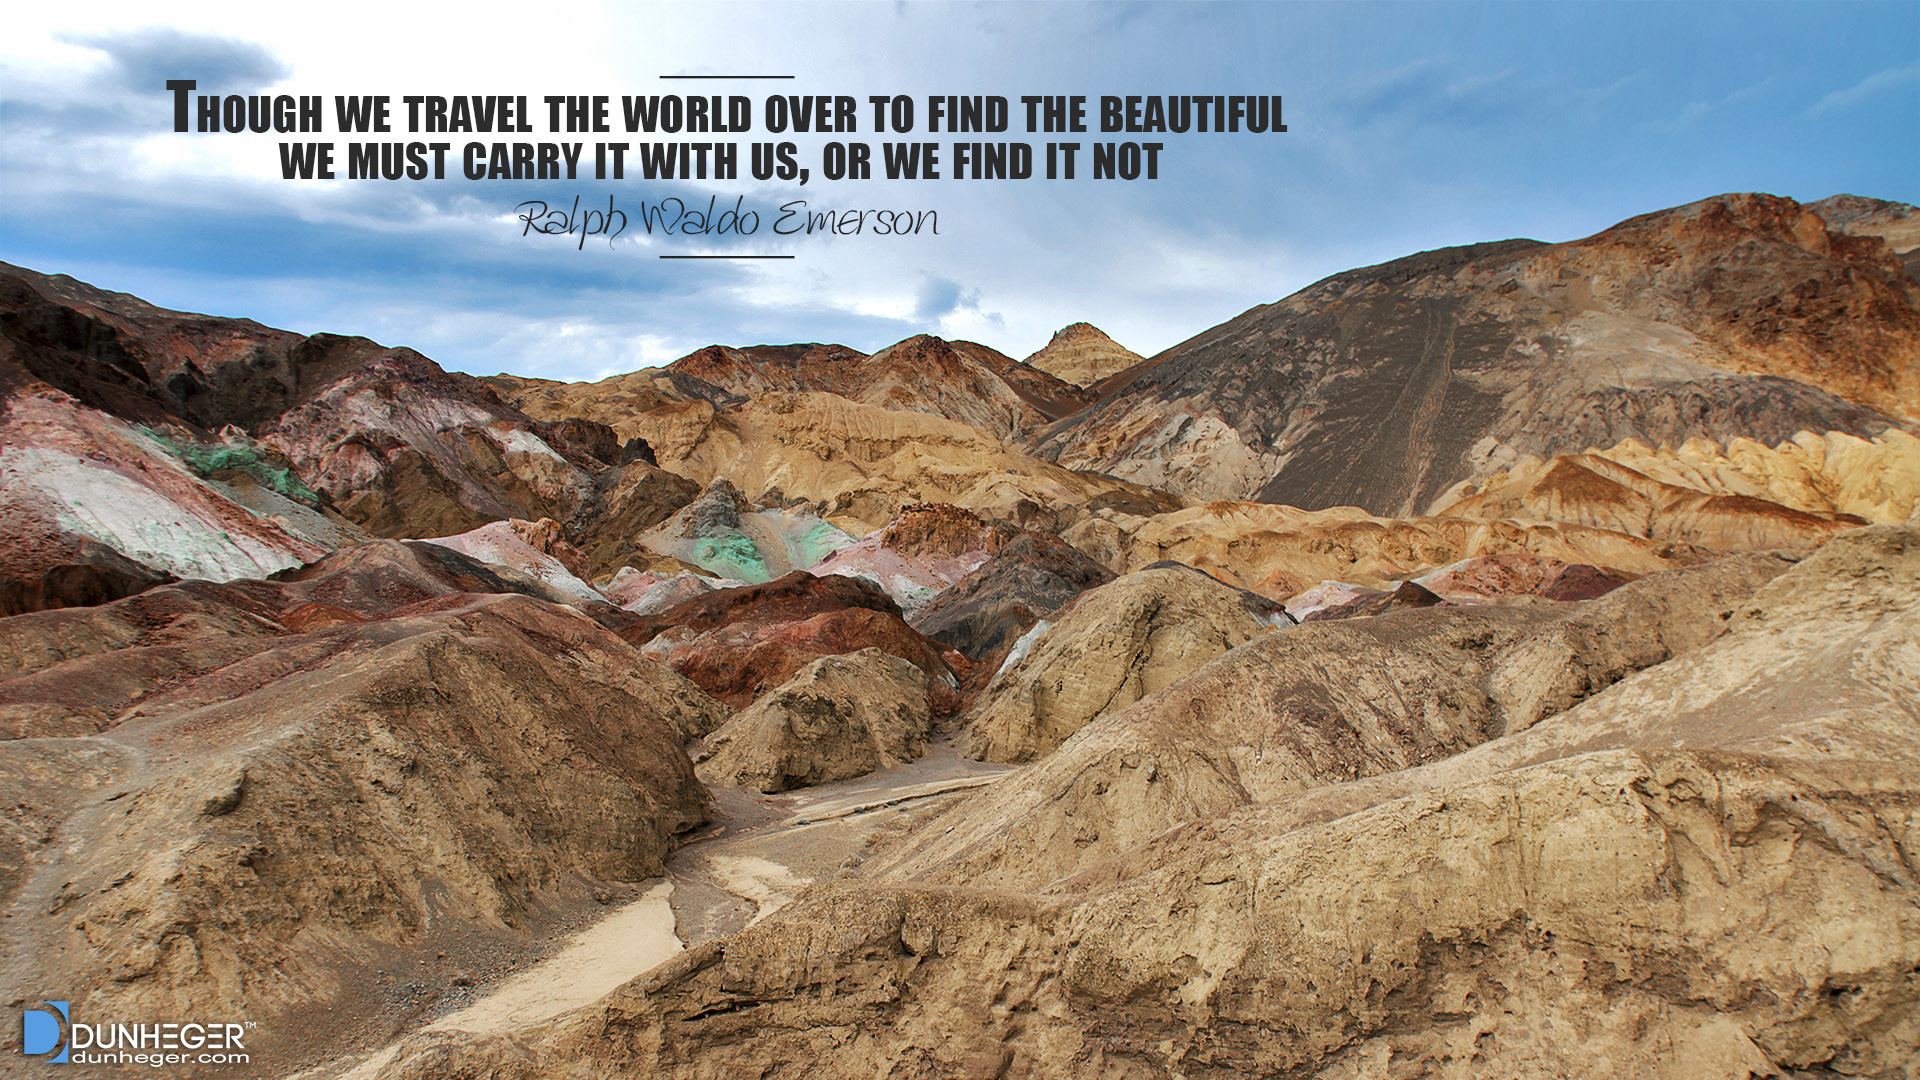 1920x1080 Death Valley, Ralph Waldo Emerson, Travel Quotes, Dunheger